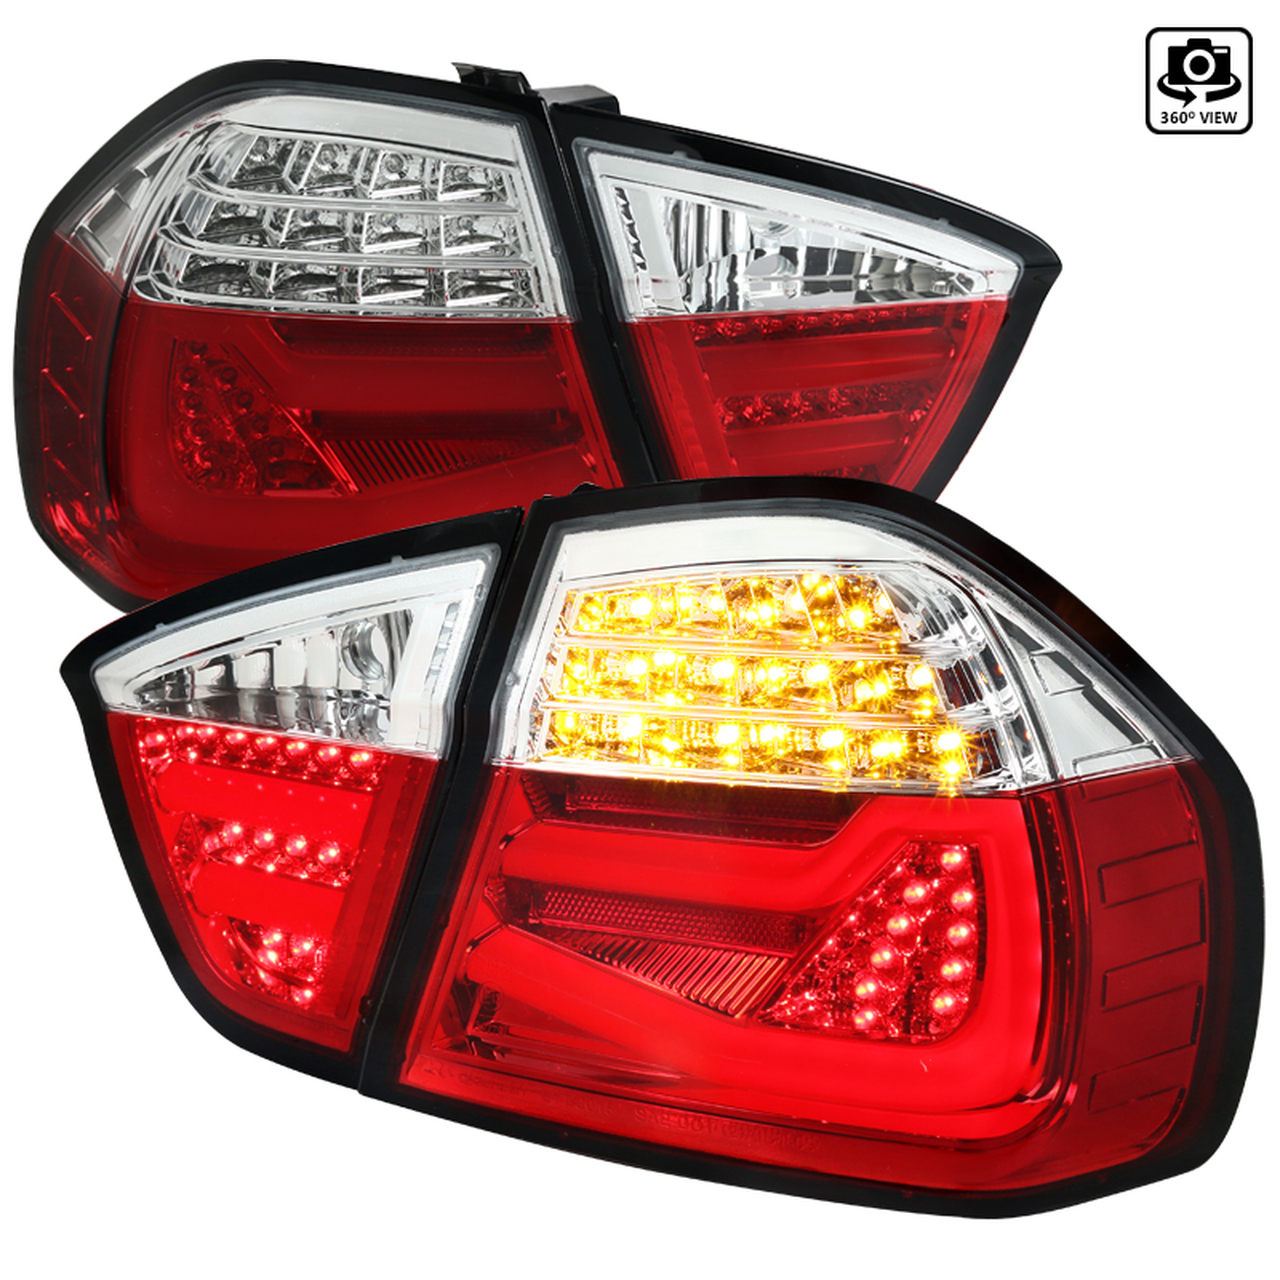 Spec-D Tuning Red LED Tail Lights - Spec-D Tuning LT-E9005RLED-TM